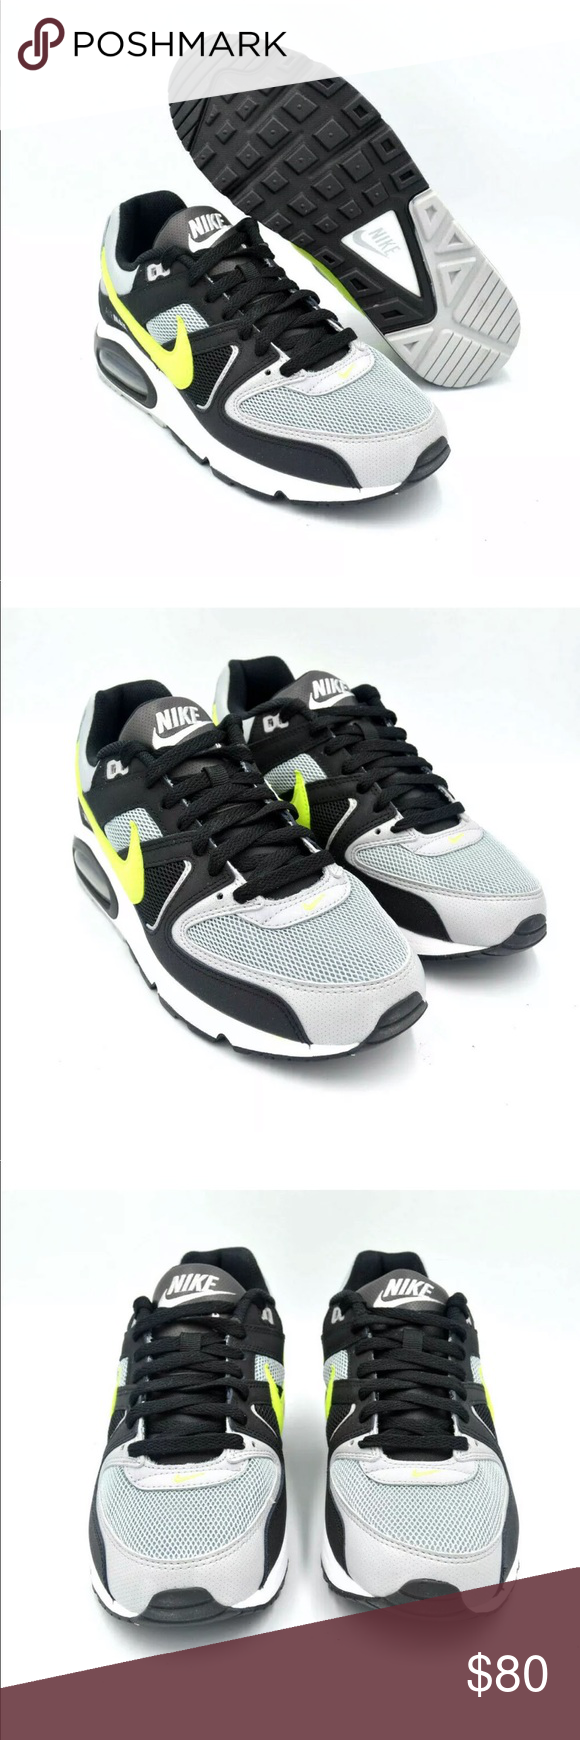 Nike Air Max Command Wolf Grey Volt Size: Multi Size Color